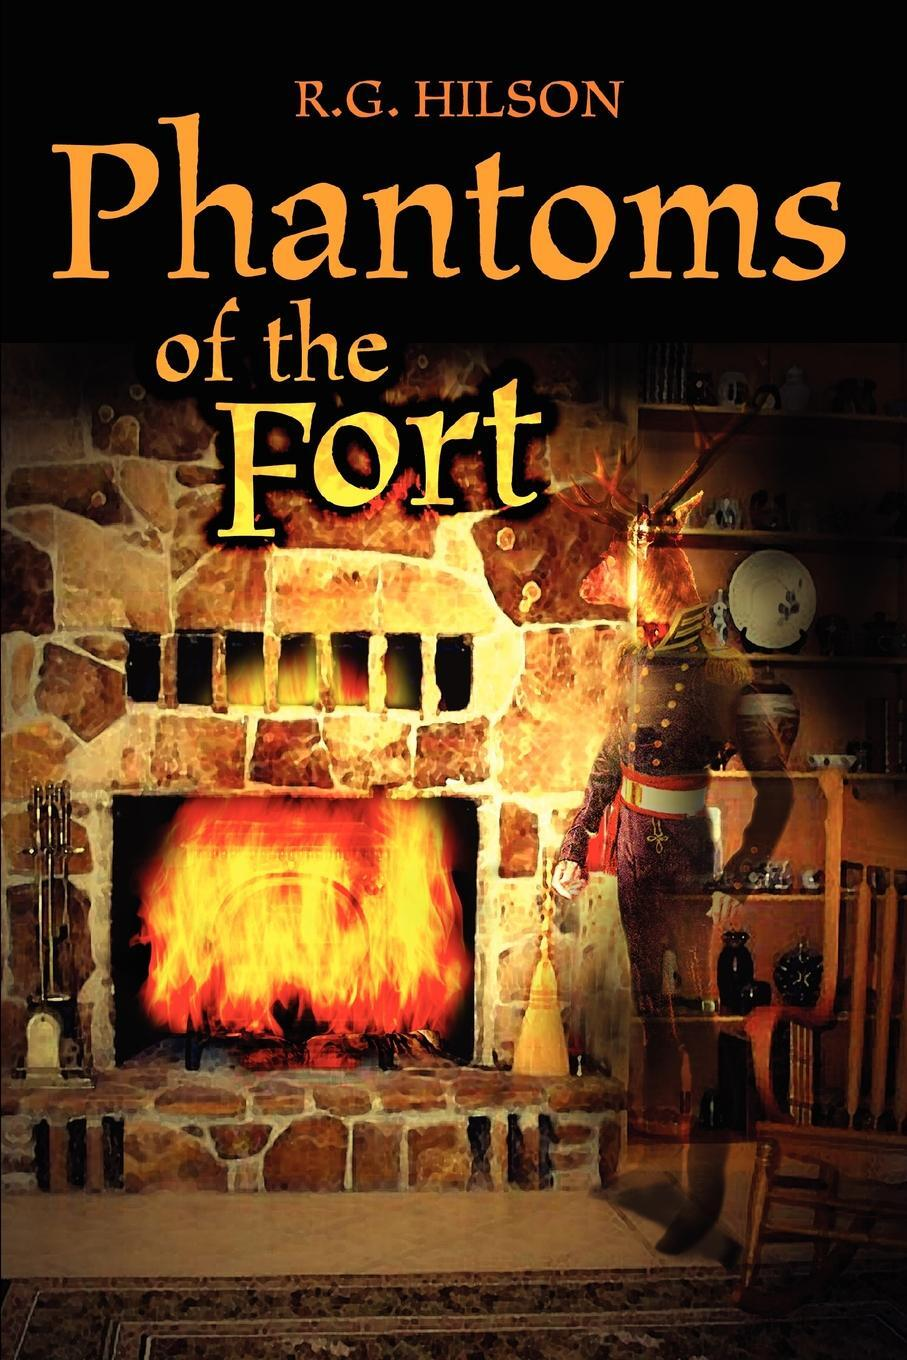 Phantoms of the Fort